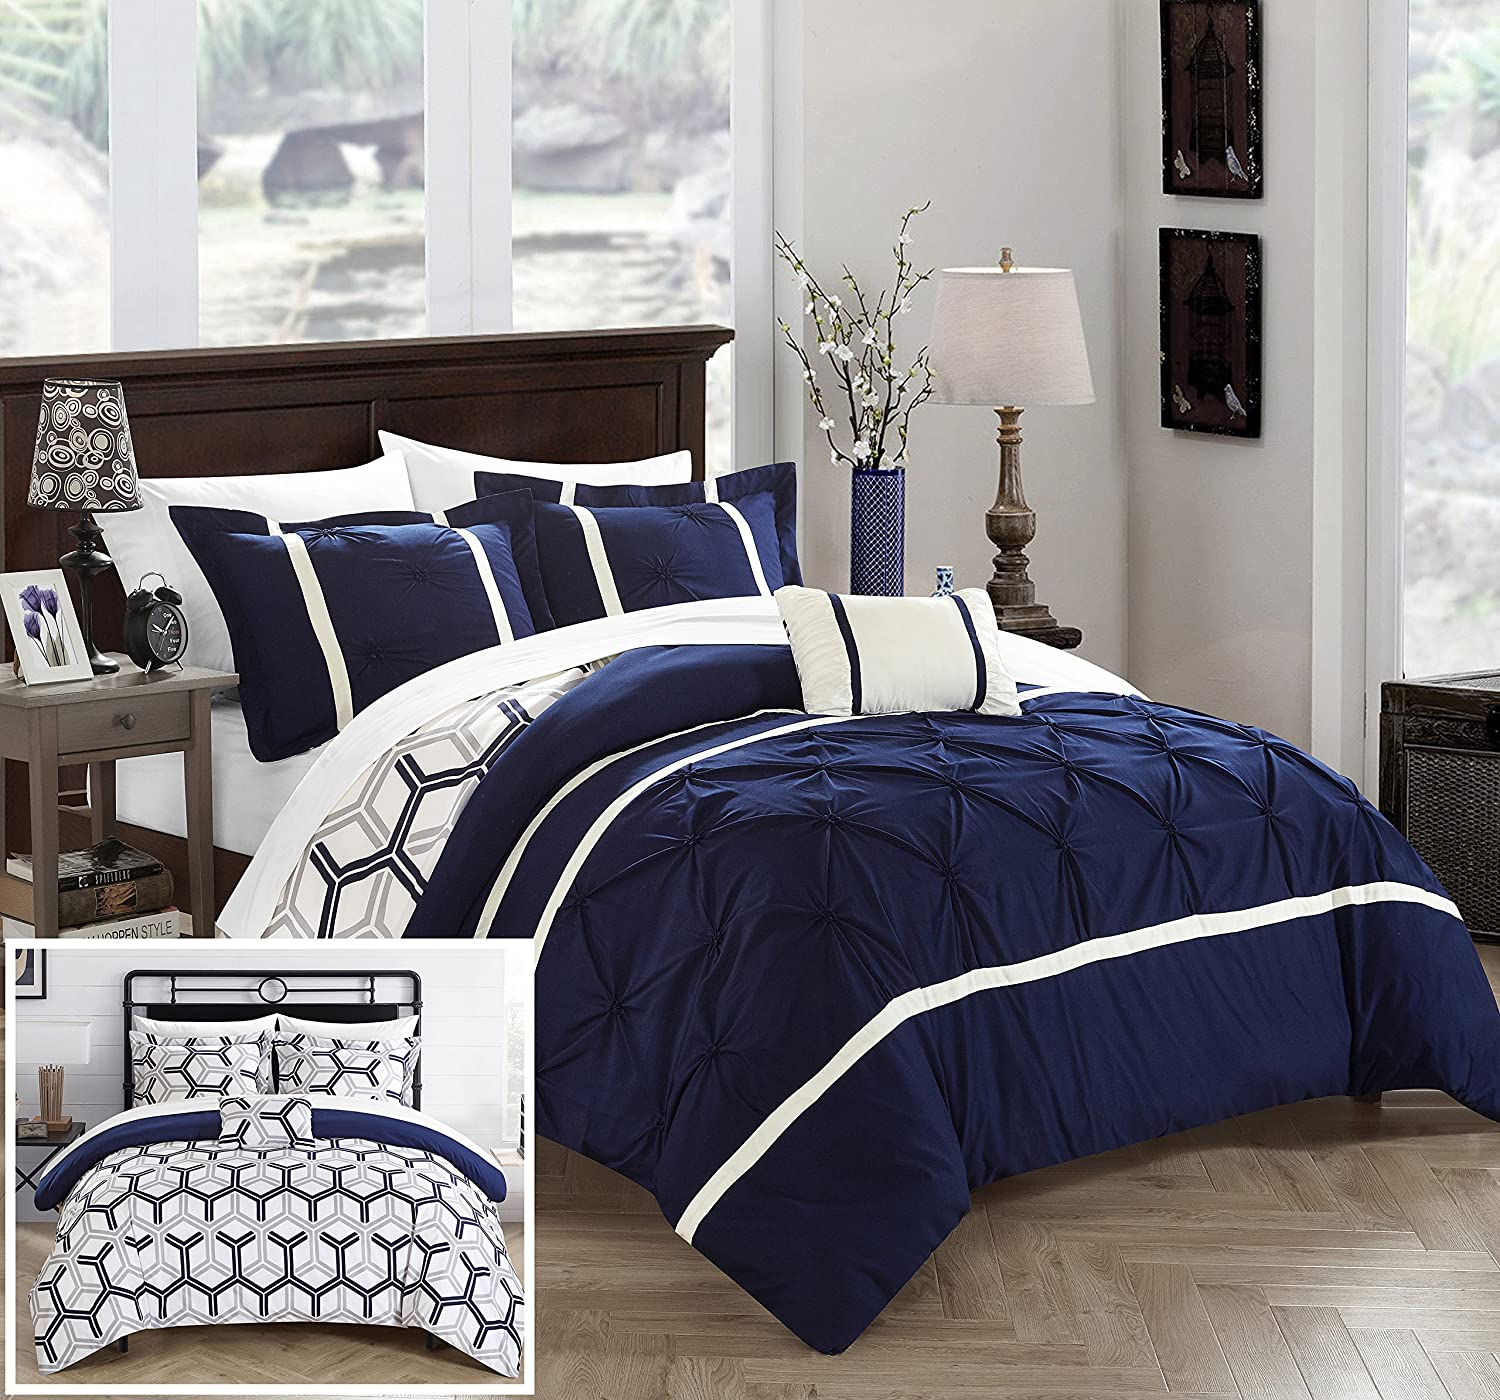 Chic Home 8 Piece Marcia Pinch Pleated & Reversible Geometric Print Full/Queen Bed in a Bag Comforter Navy with Sheet Set